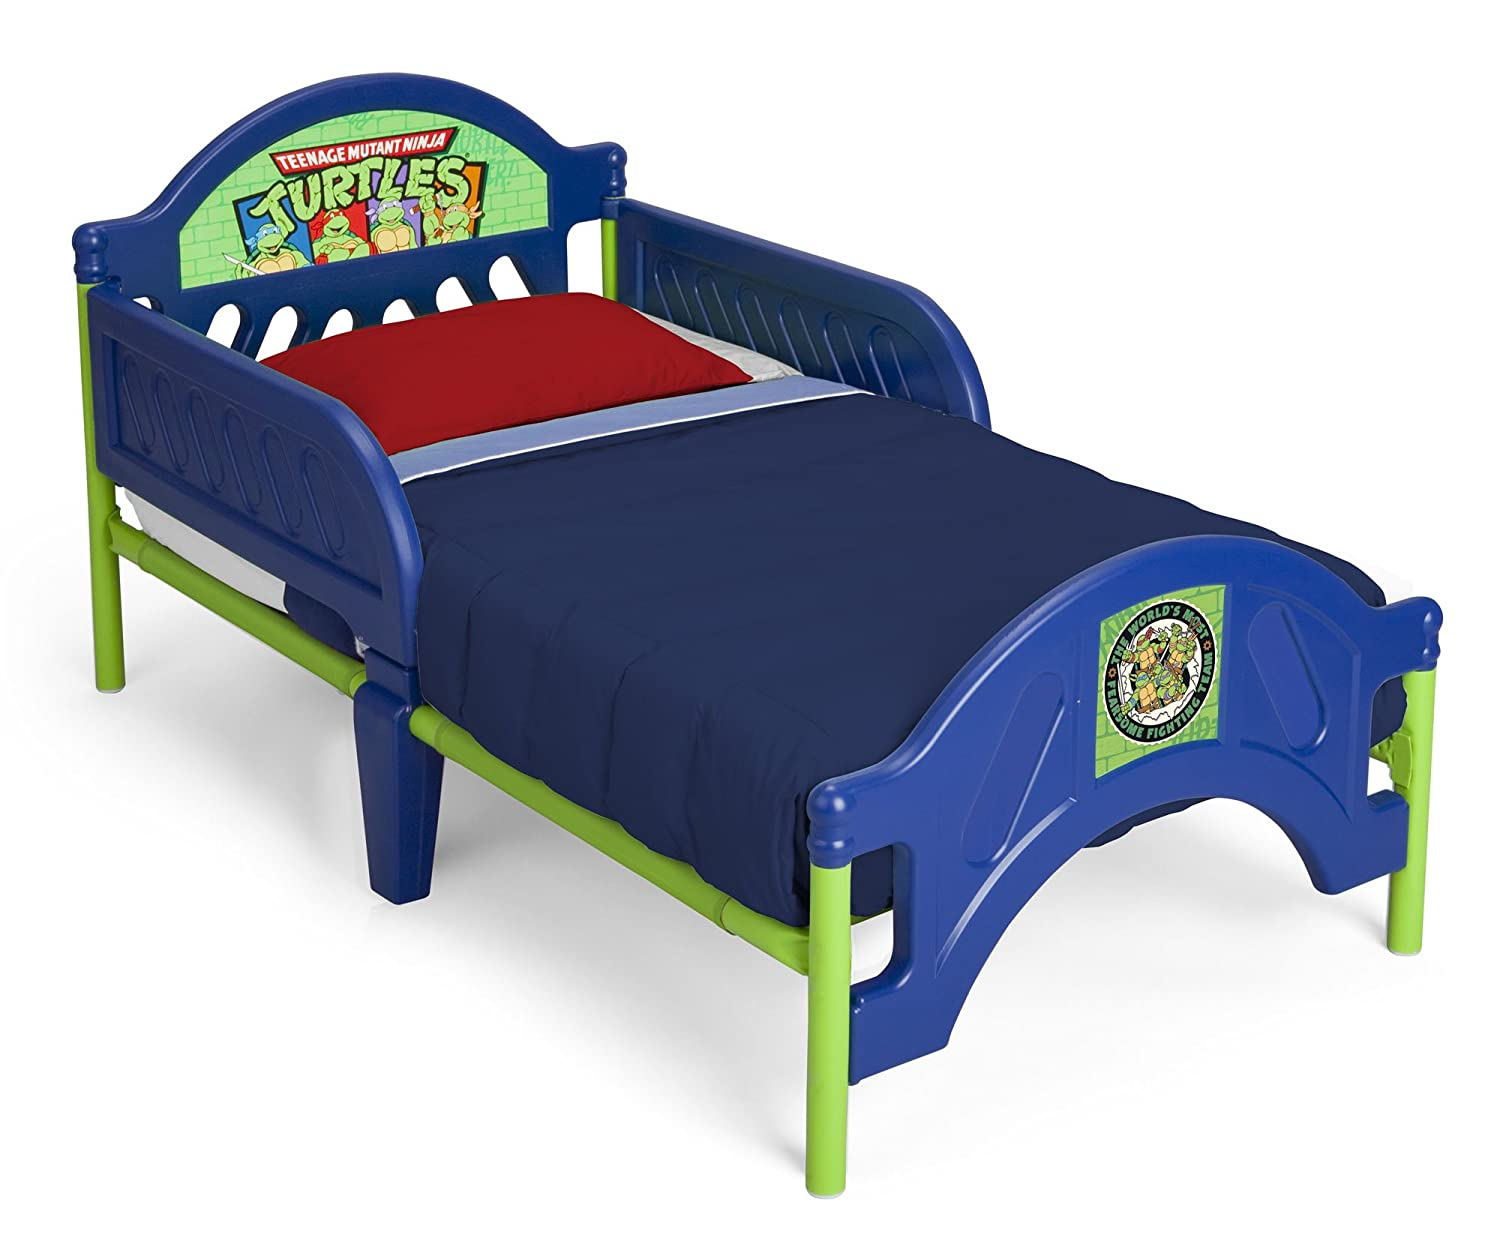 Plastic toddler bed ninja turtles child boys bedroom furniture paw patrol blue - Toddler beds for boys ...